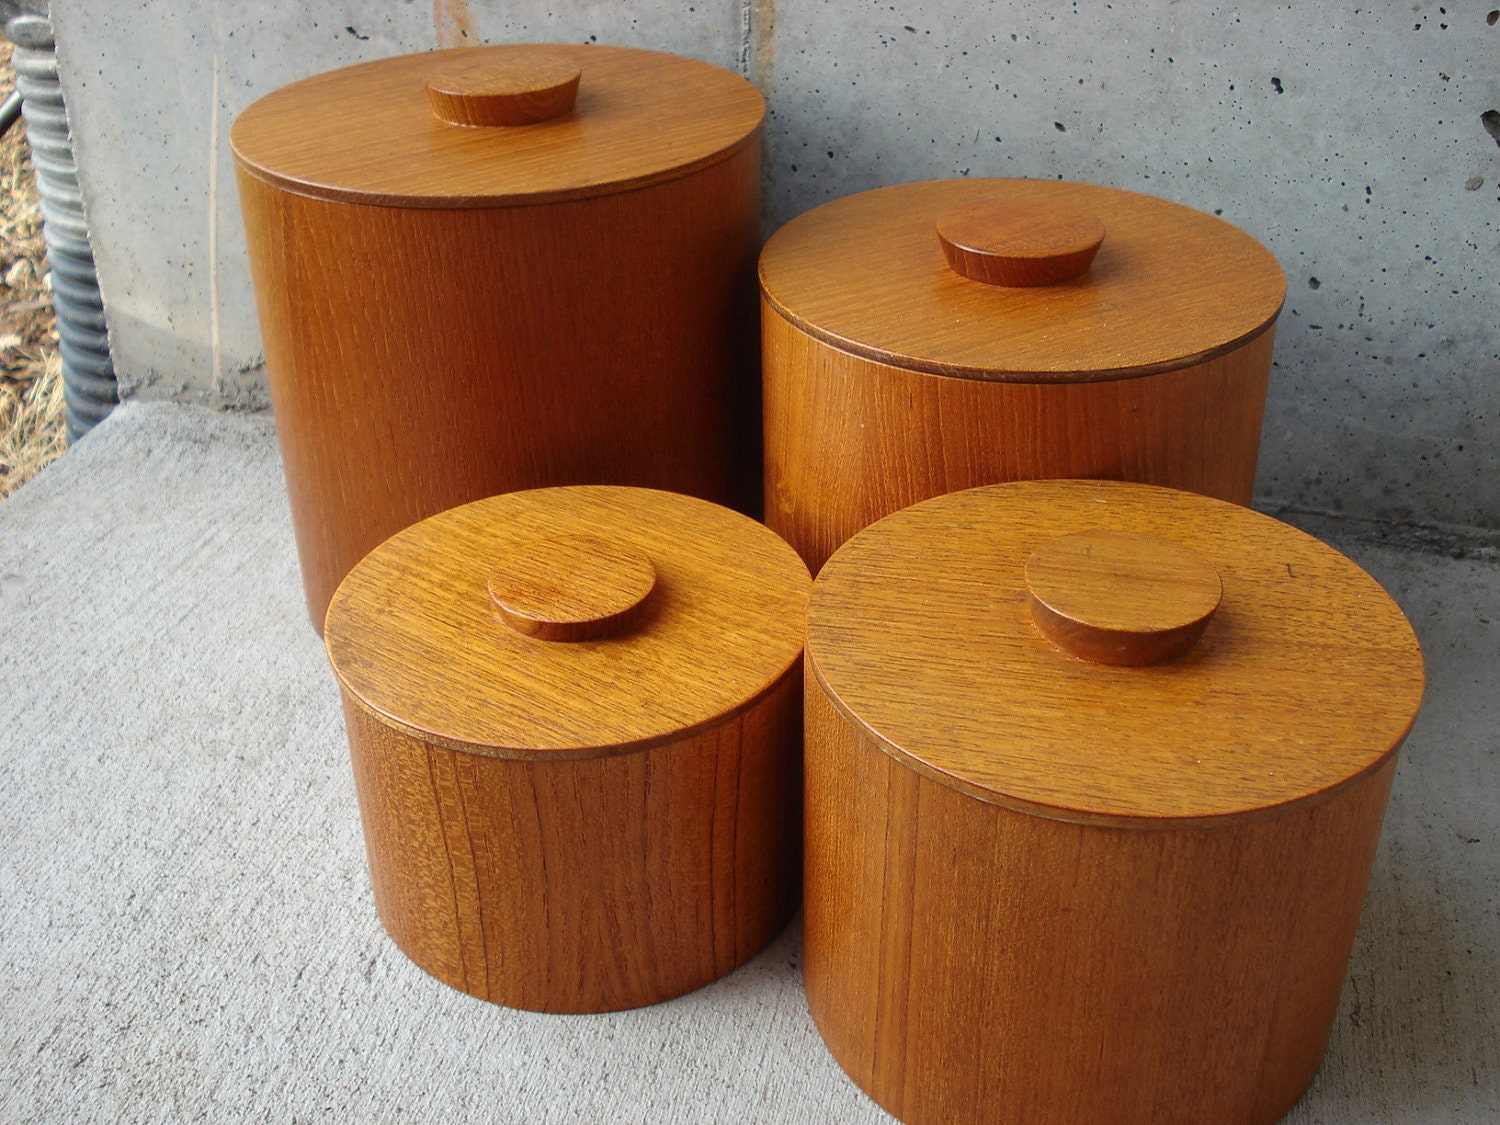 wooden canisters kitchen set of 4 all wood kitchen canister set by lkwhatthecatdraggedn 6134